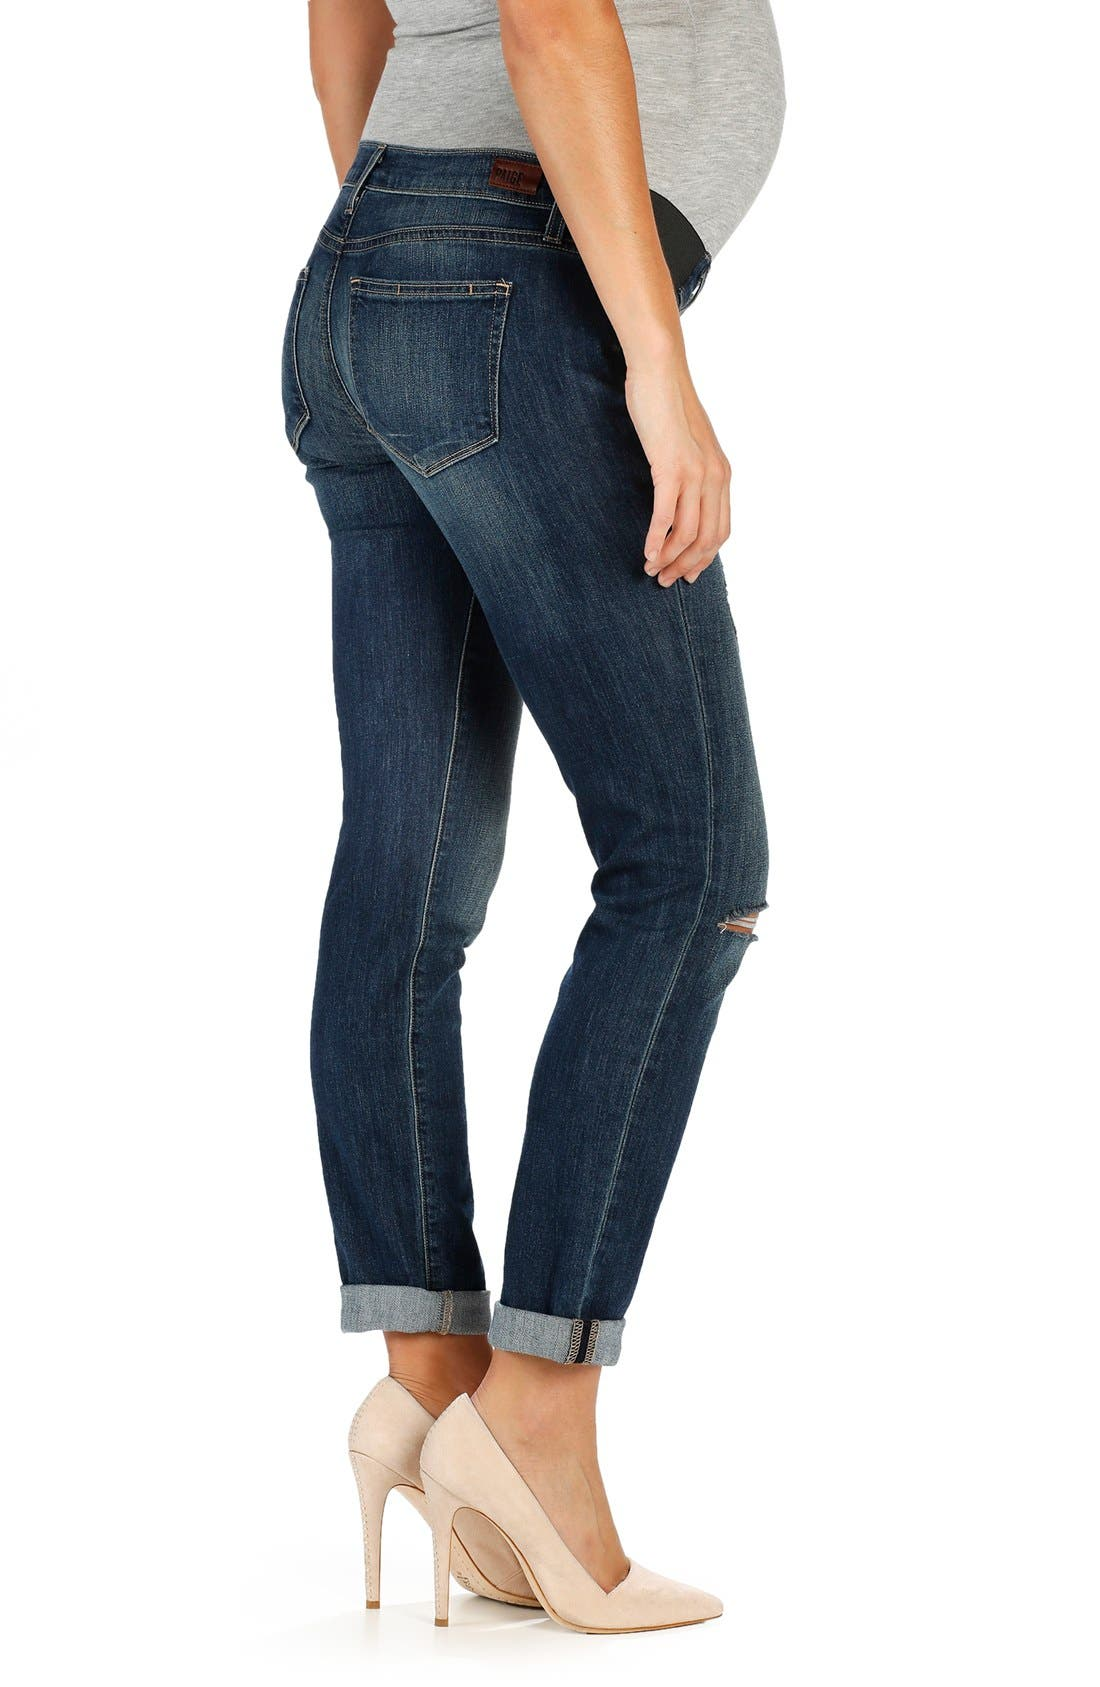 Alternate Image 2  - PAIGE 'Jimmy Jimmy' Boyfriend Skinny Maternity Jeans (Tawny Destructed)